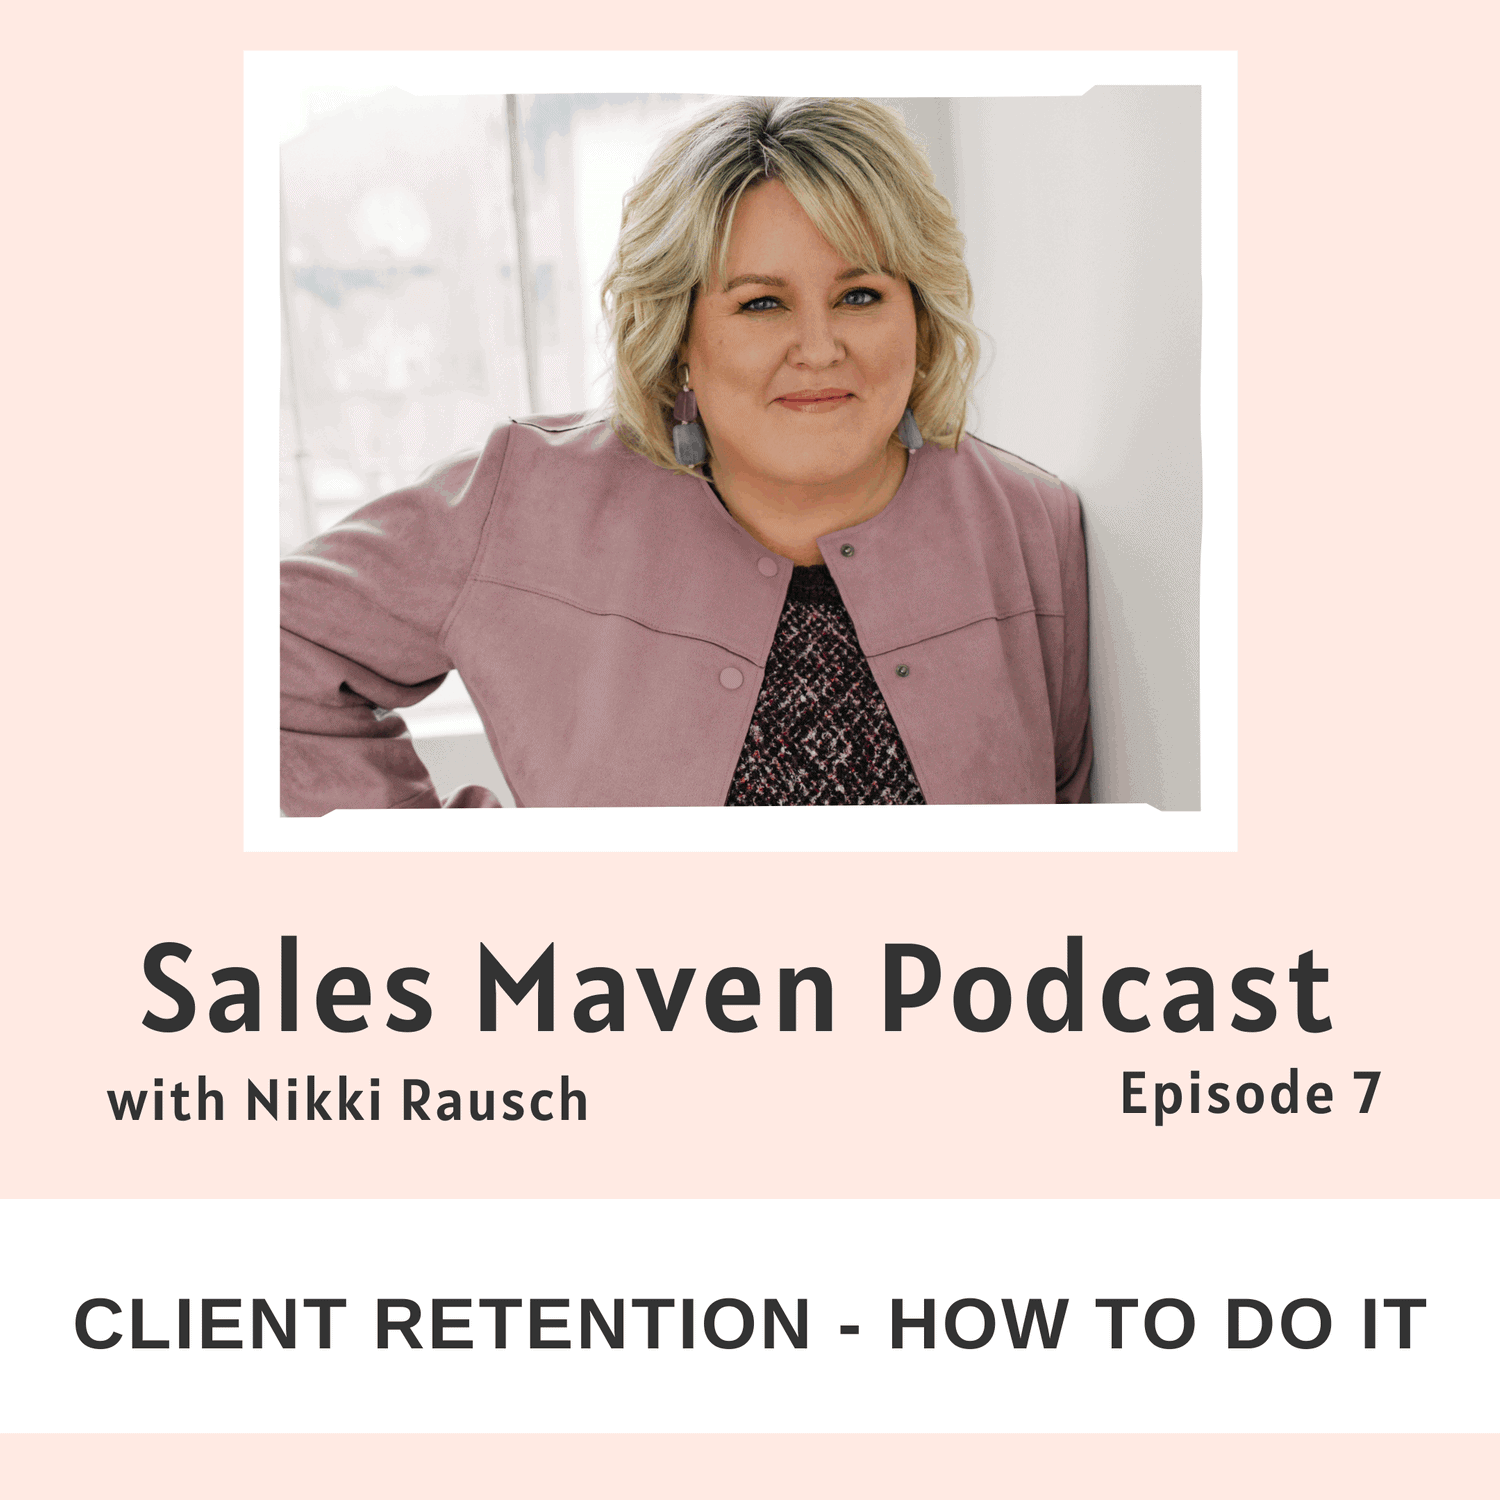 Client retention - how to do it